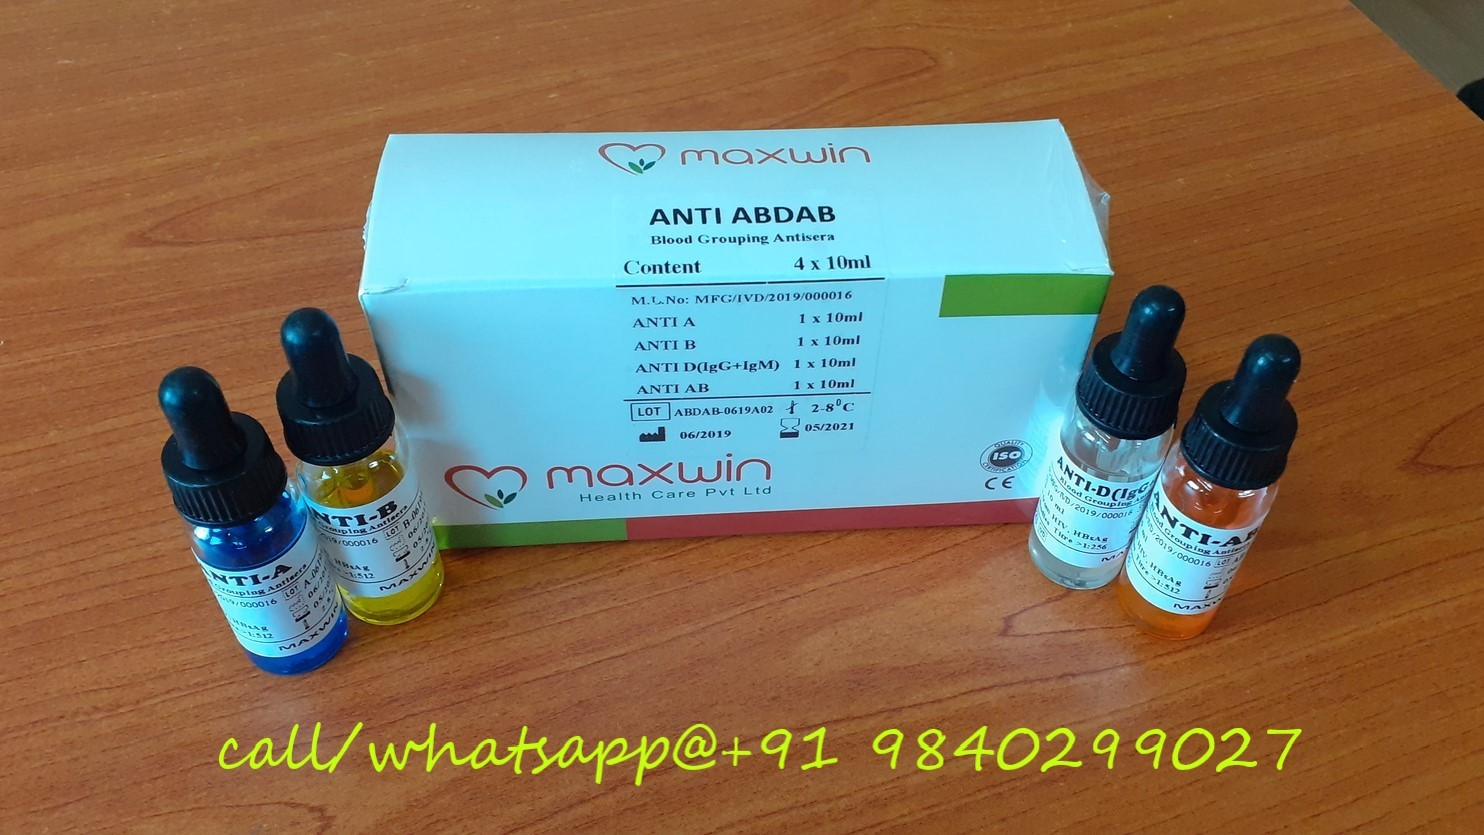 ANTI ABO Monoclonal Blood Grouping Reagents